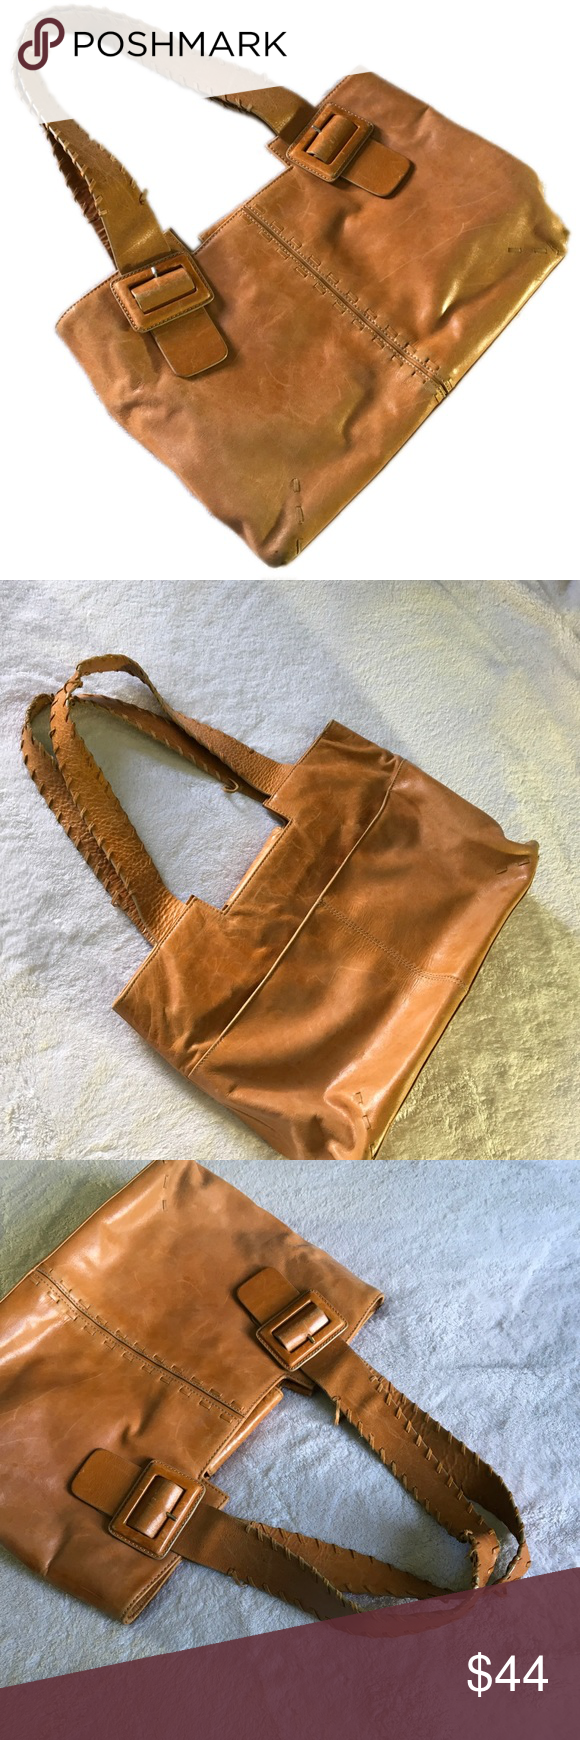 Franklin Covey Light Brown Leather Tote Bag Small Flap With On Keep Closed Nice